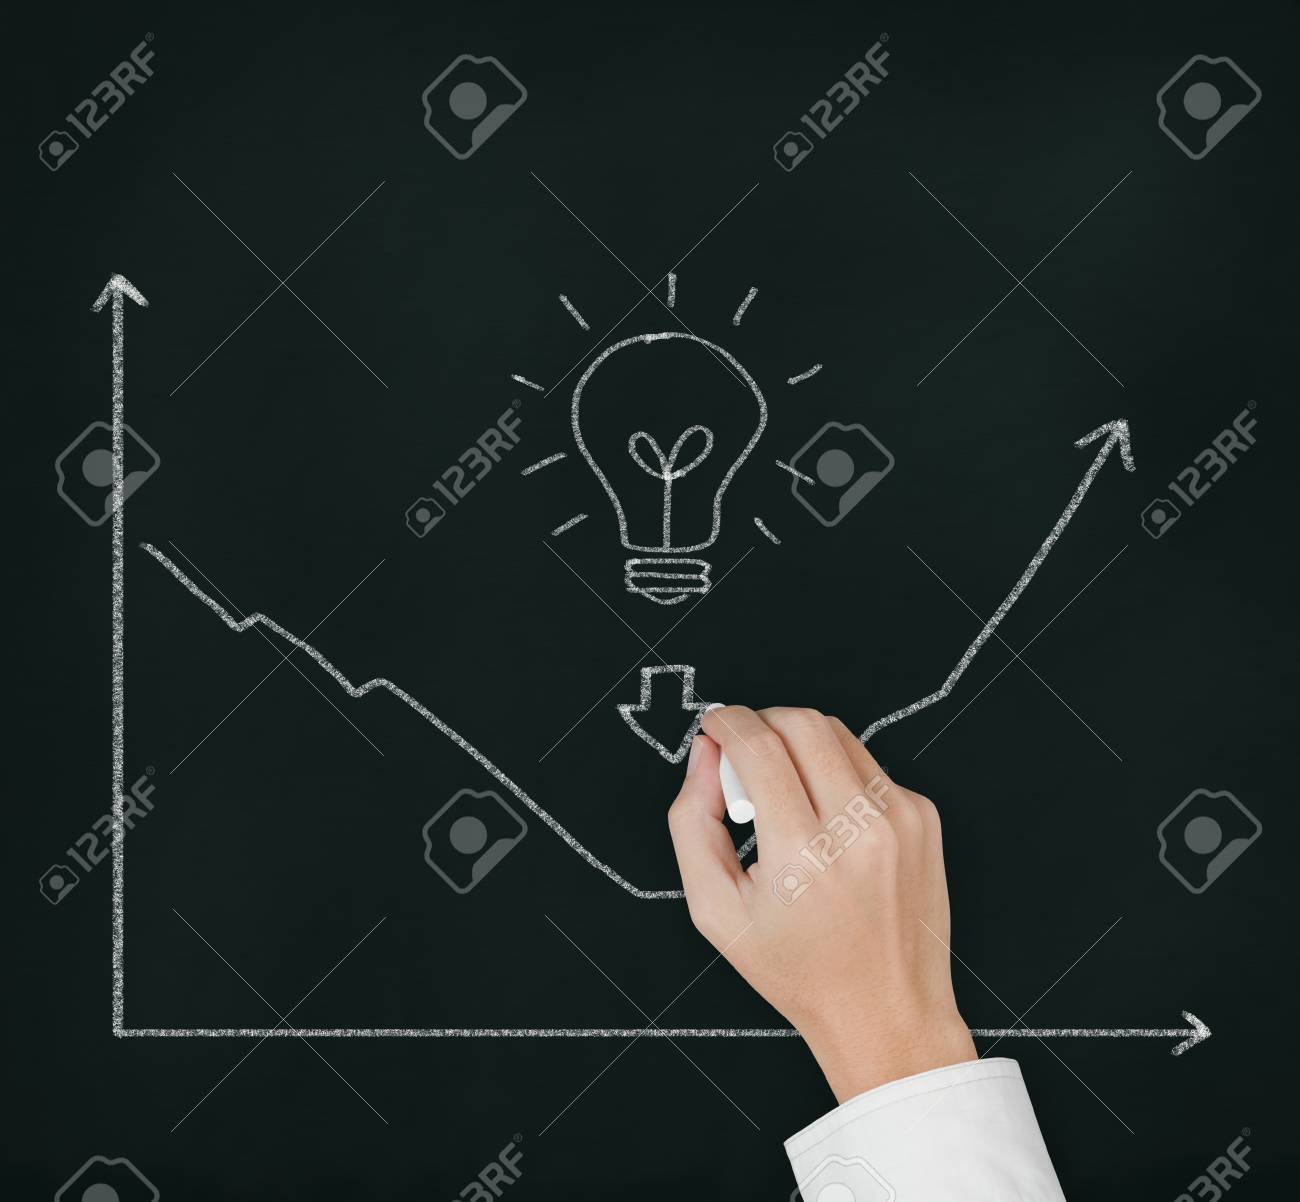 business hand writing picture of good idea can change regression to progression Stock Photo - 12207811